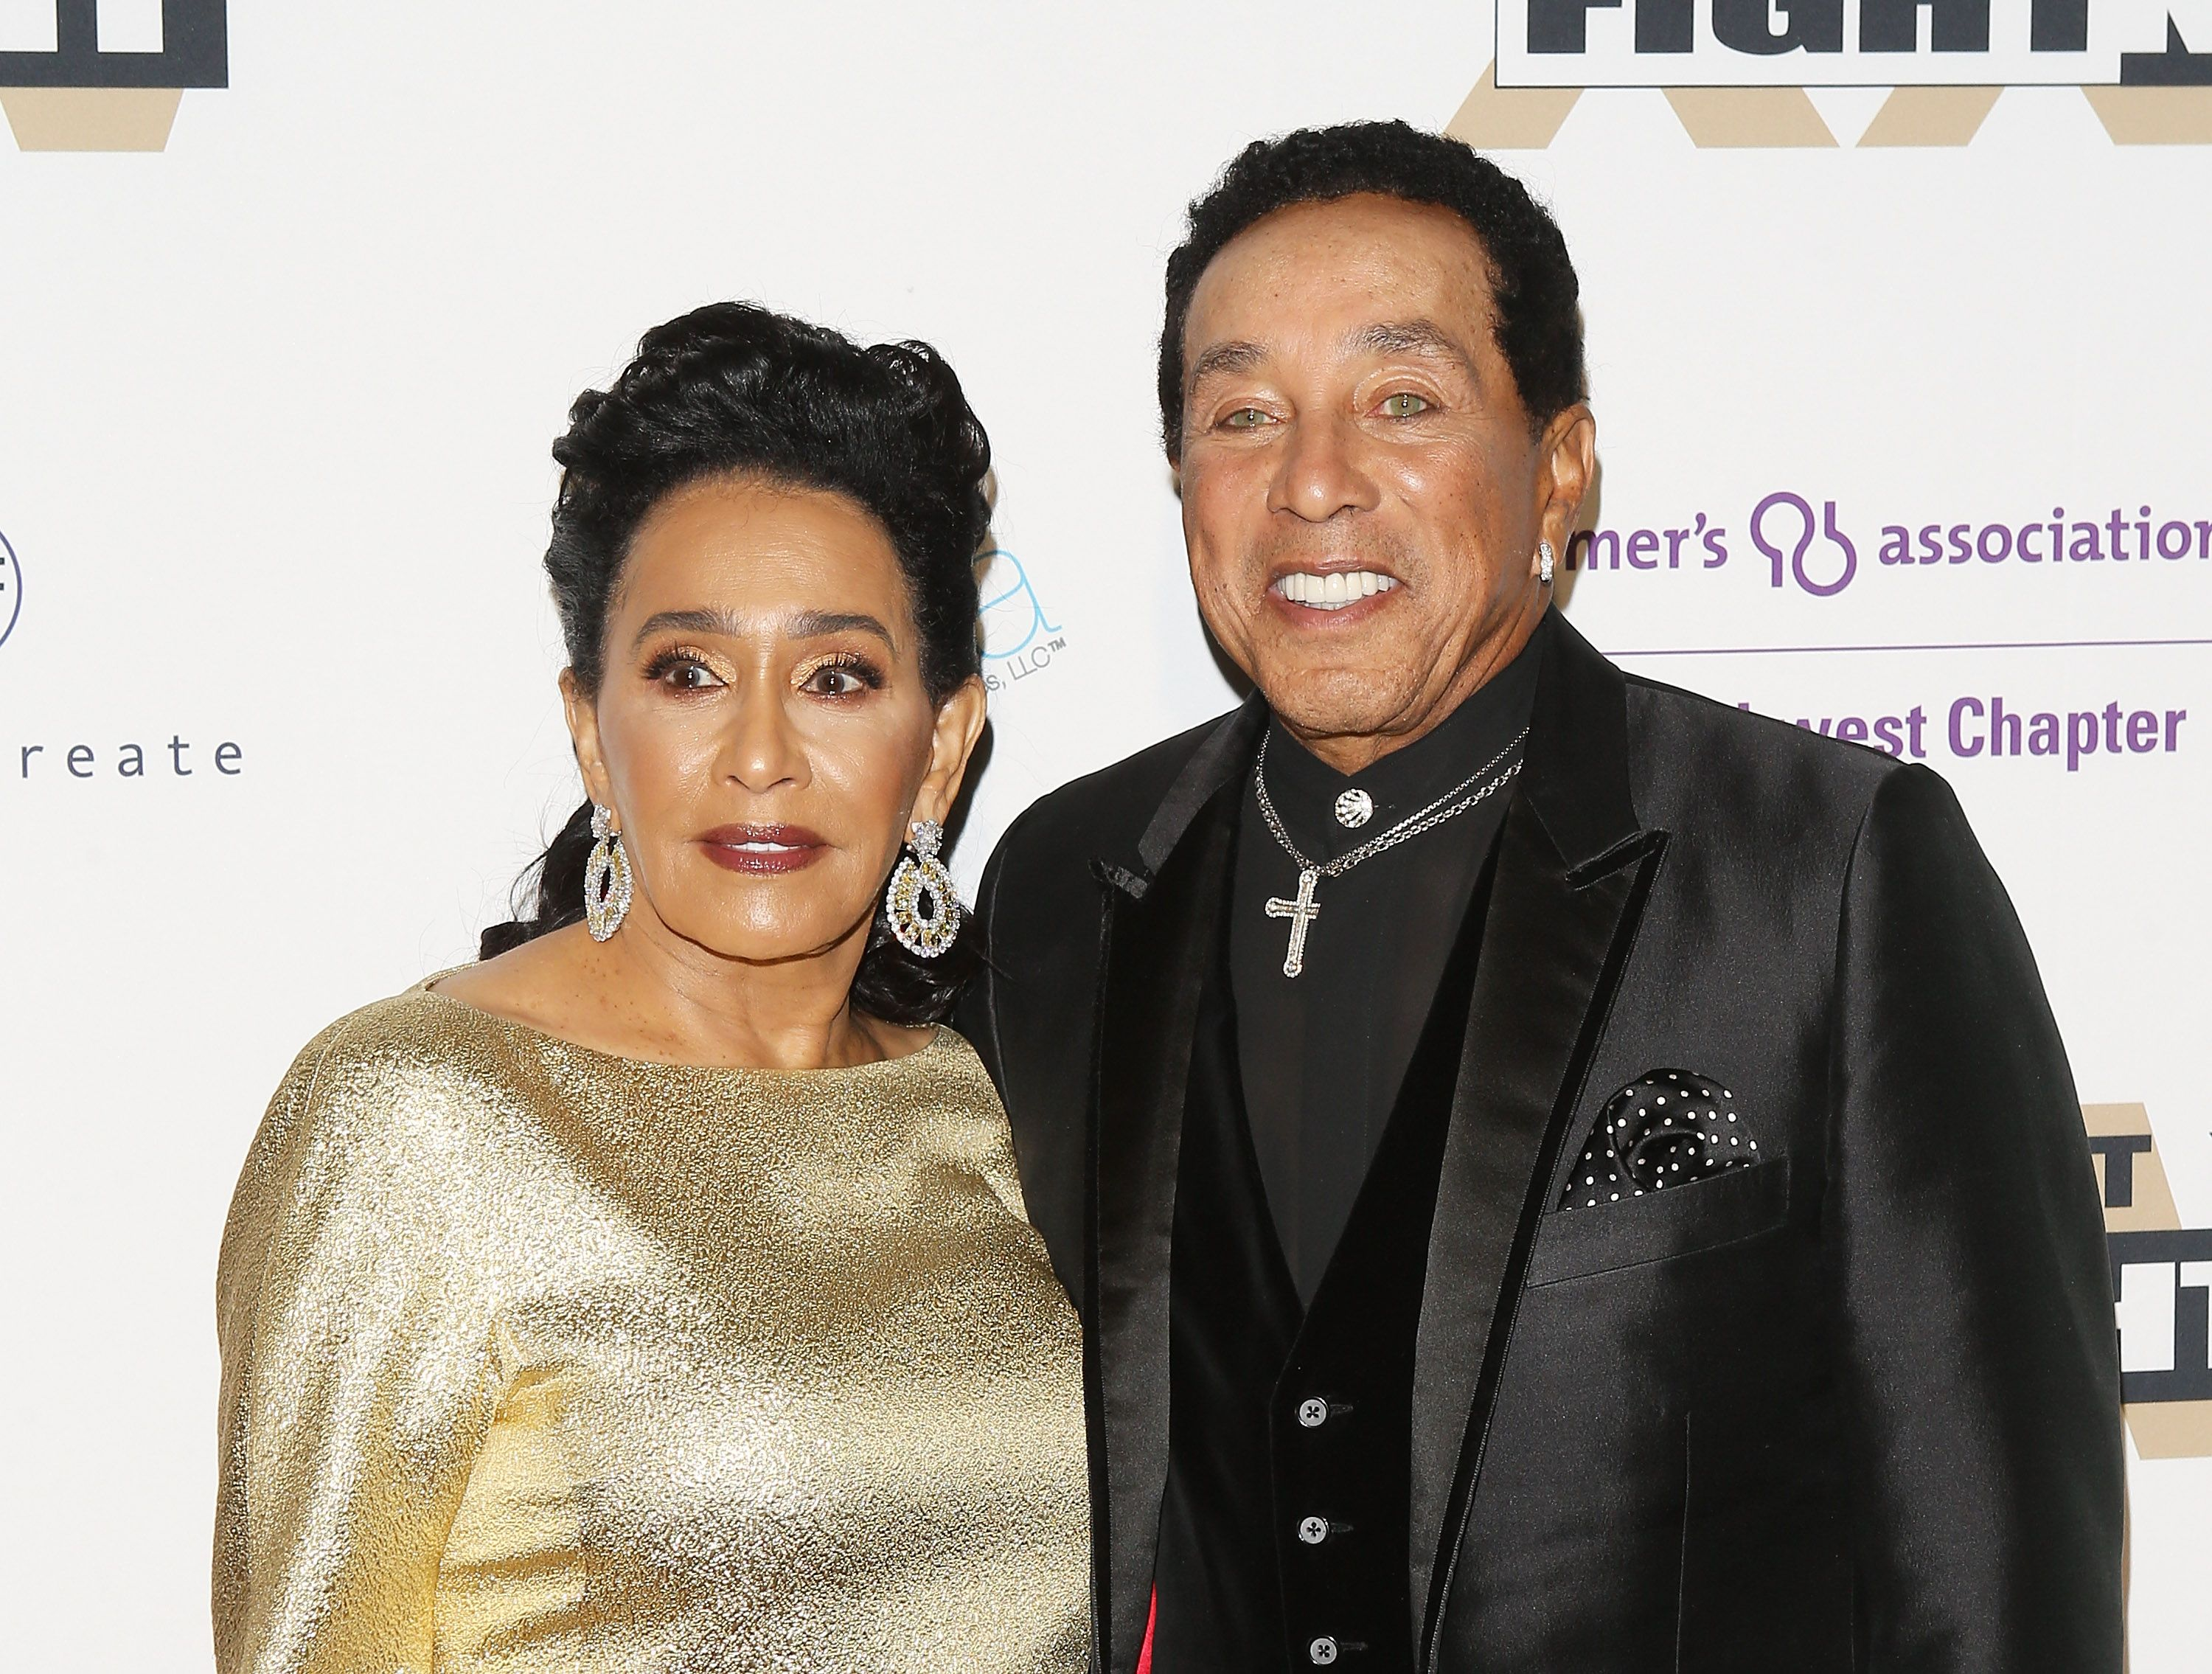 Smokey Robinson and Claudette Robinson during the Celebrity Fight Night XXIV held at JW Marriot Desert Ridge Resort & Spa on March 10, 2018 in Phoenix, Arizona. | Source: Getty Images